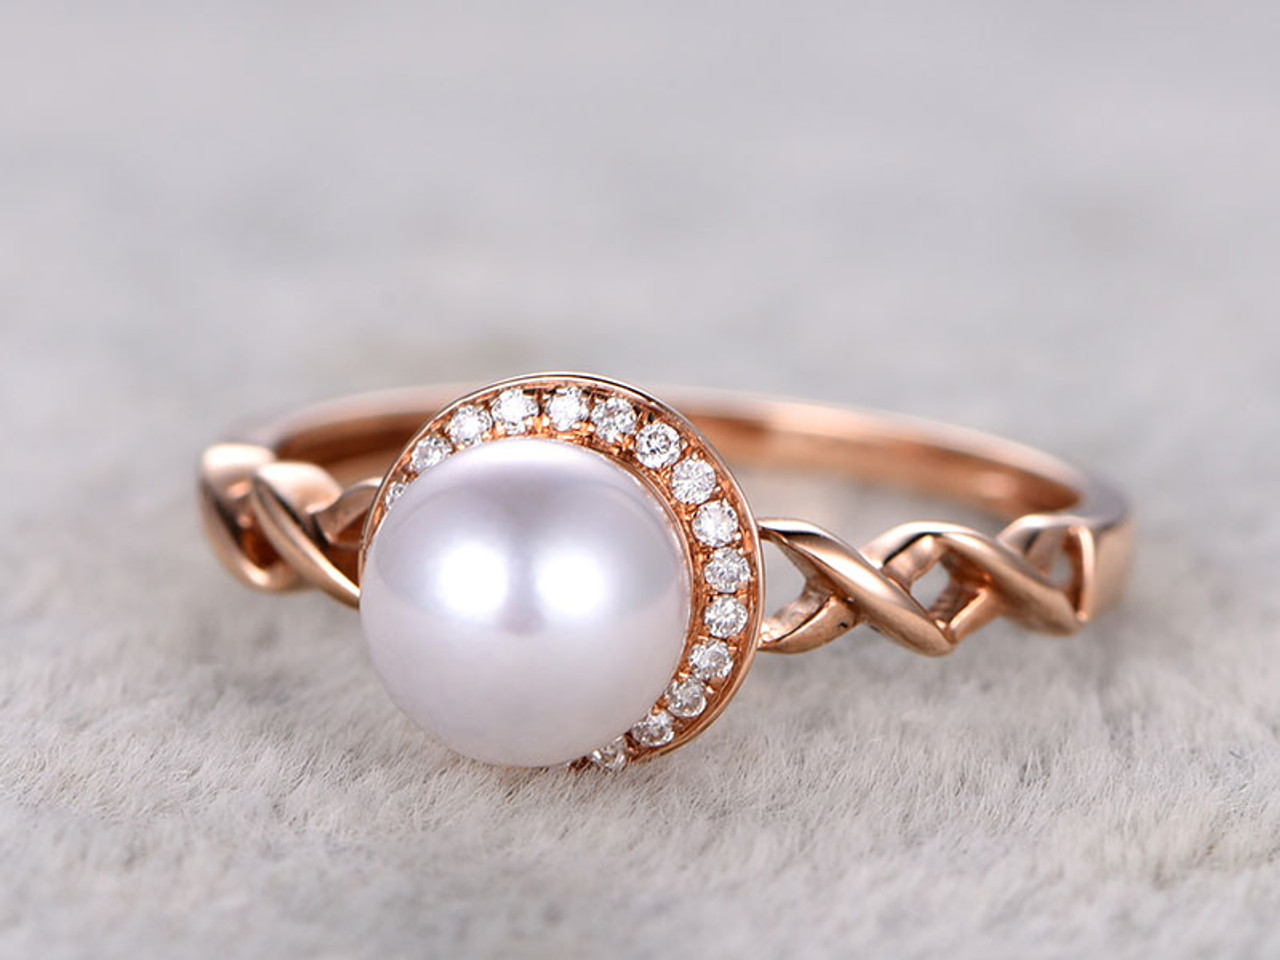 pearls terrific wedding ring every for rings precious engagement pearl design bridal